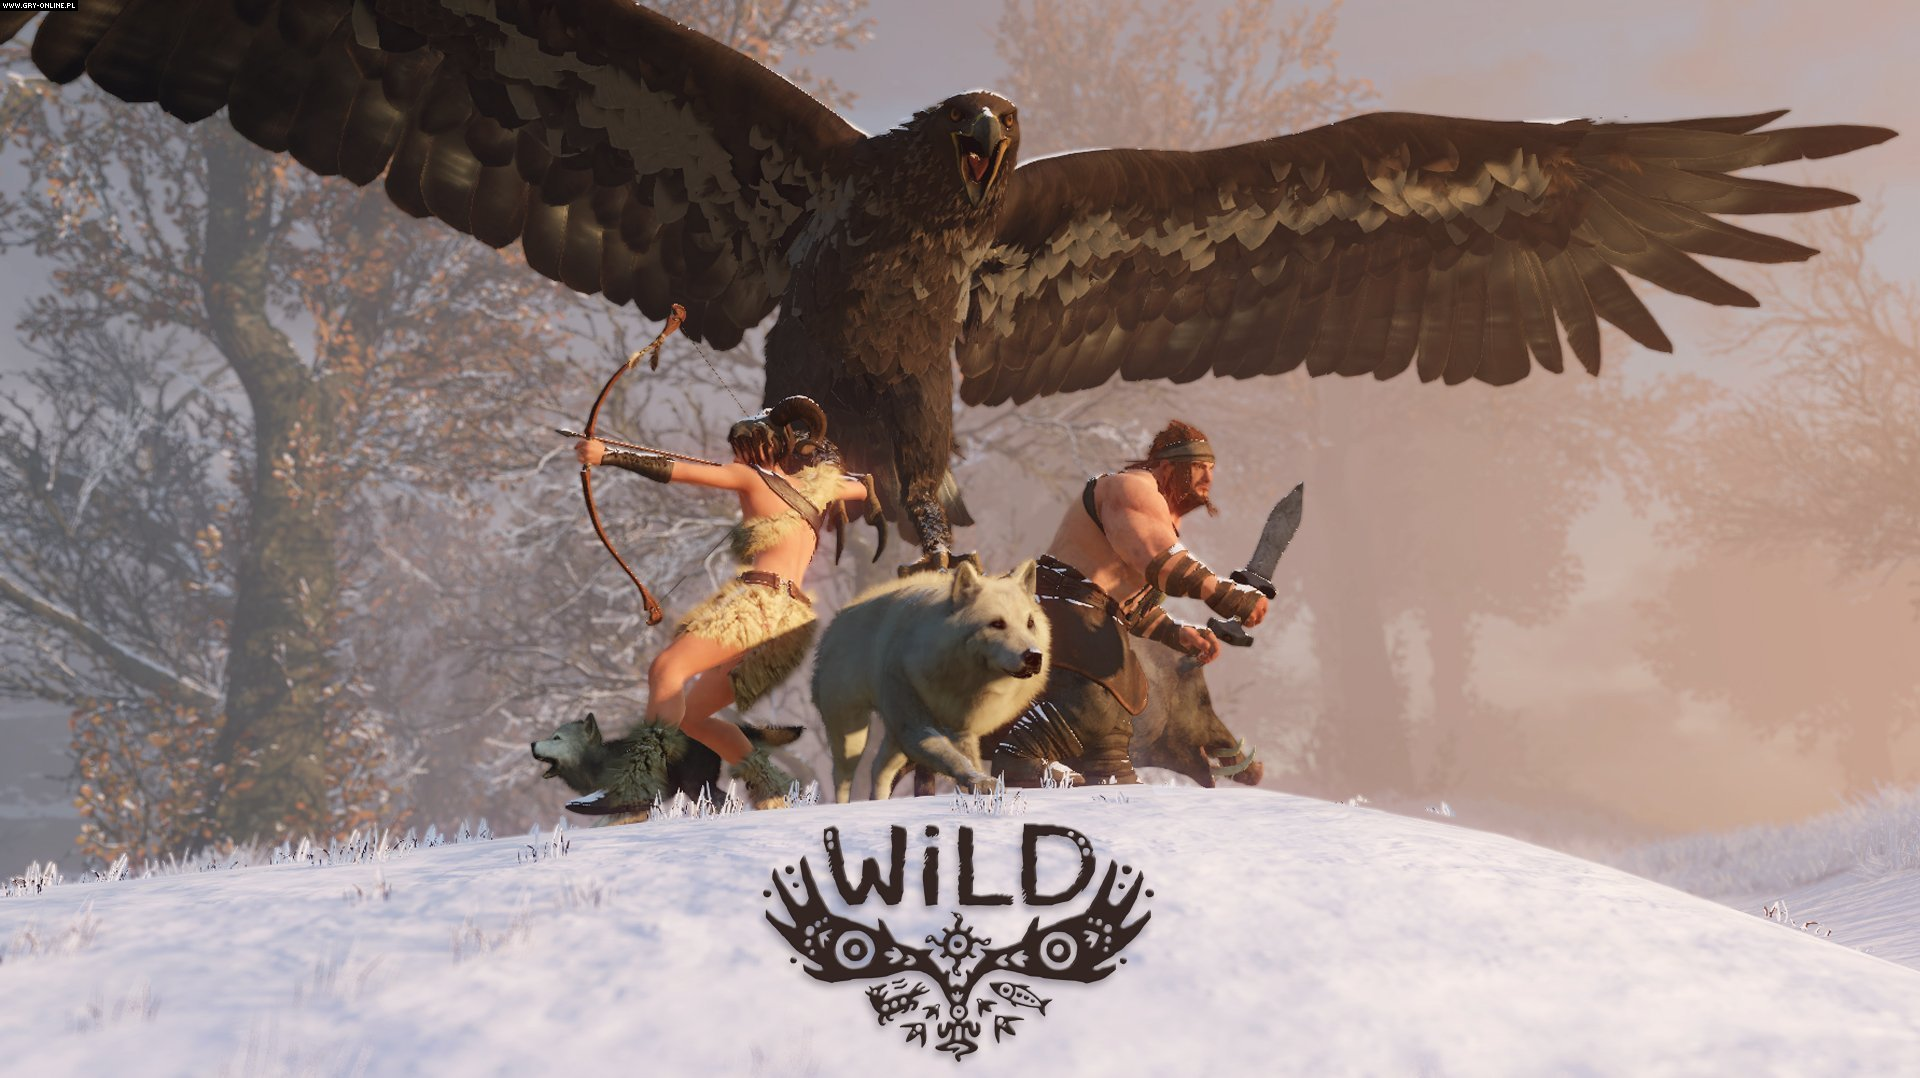 Wild PS4 Games Image 15/15, Wild Sheep Studio, Sony Interactive Entertainment